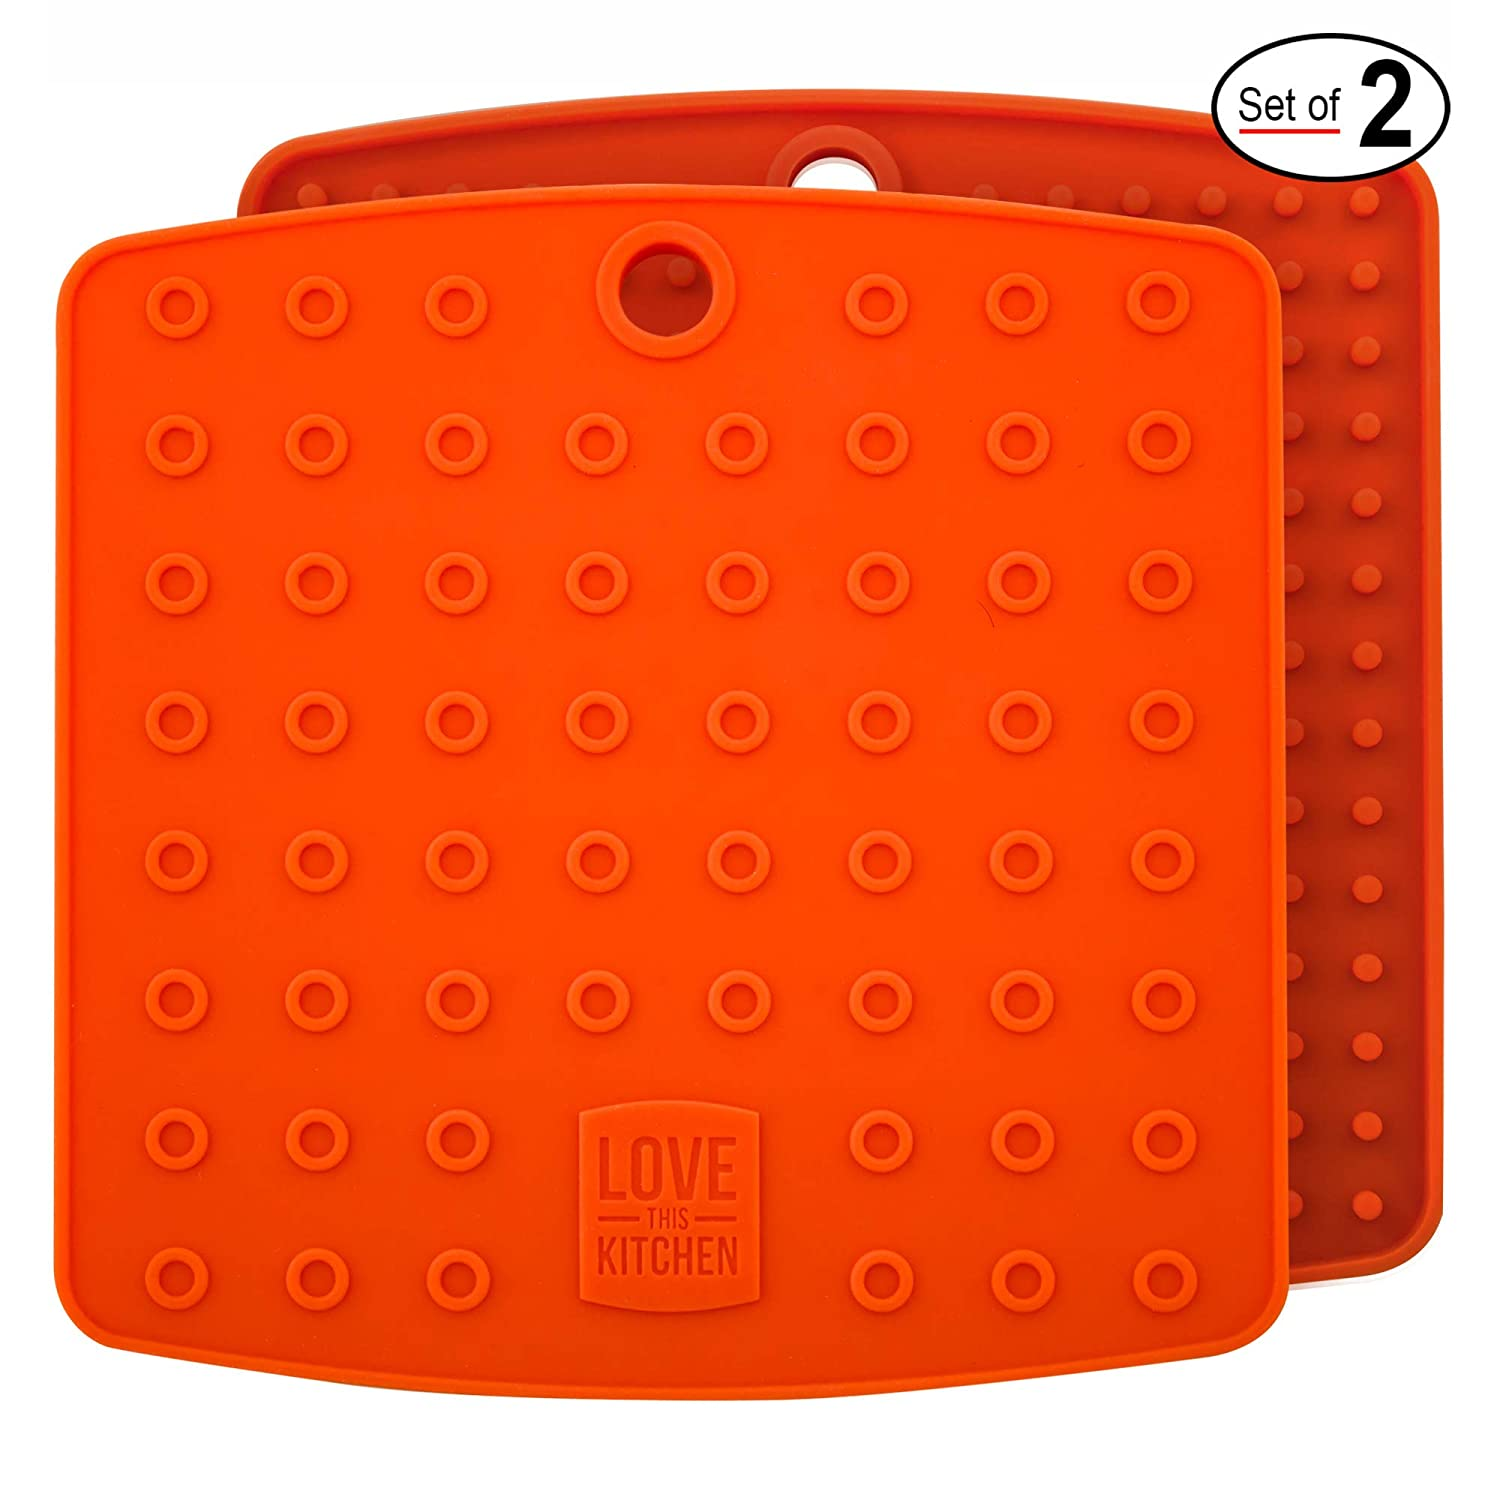 Premium Silicone Trivet & Pot Holders. Our Silicone Hot Pads Work as Jar Opener Gripper Pad, Large Coasters & Spoon Rest. Trivets are Heat Resistant to 442 F & Flexible (7x7 in, Orange,1 Pair)